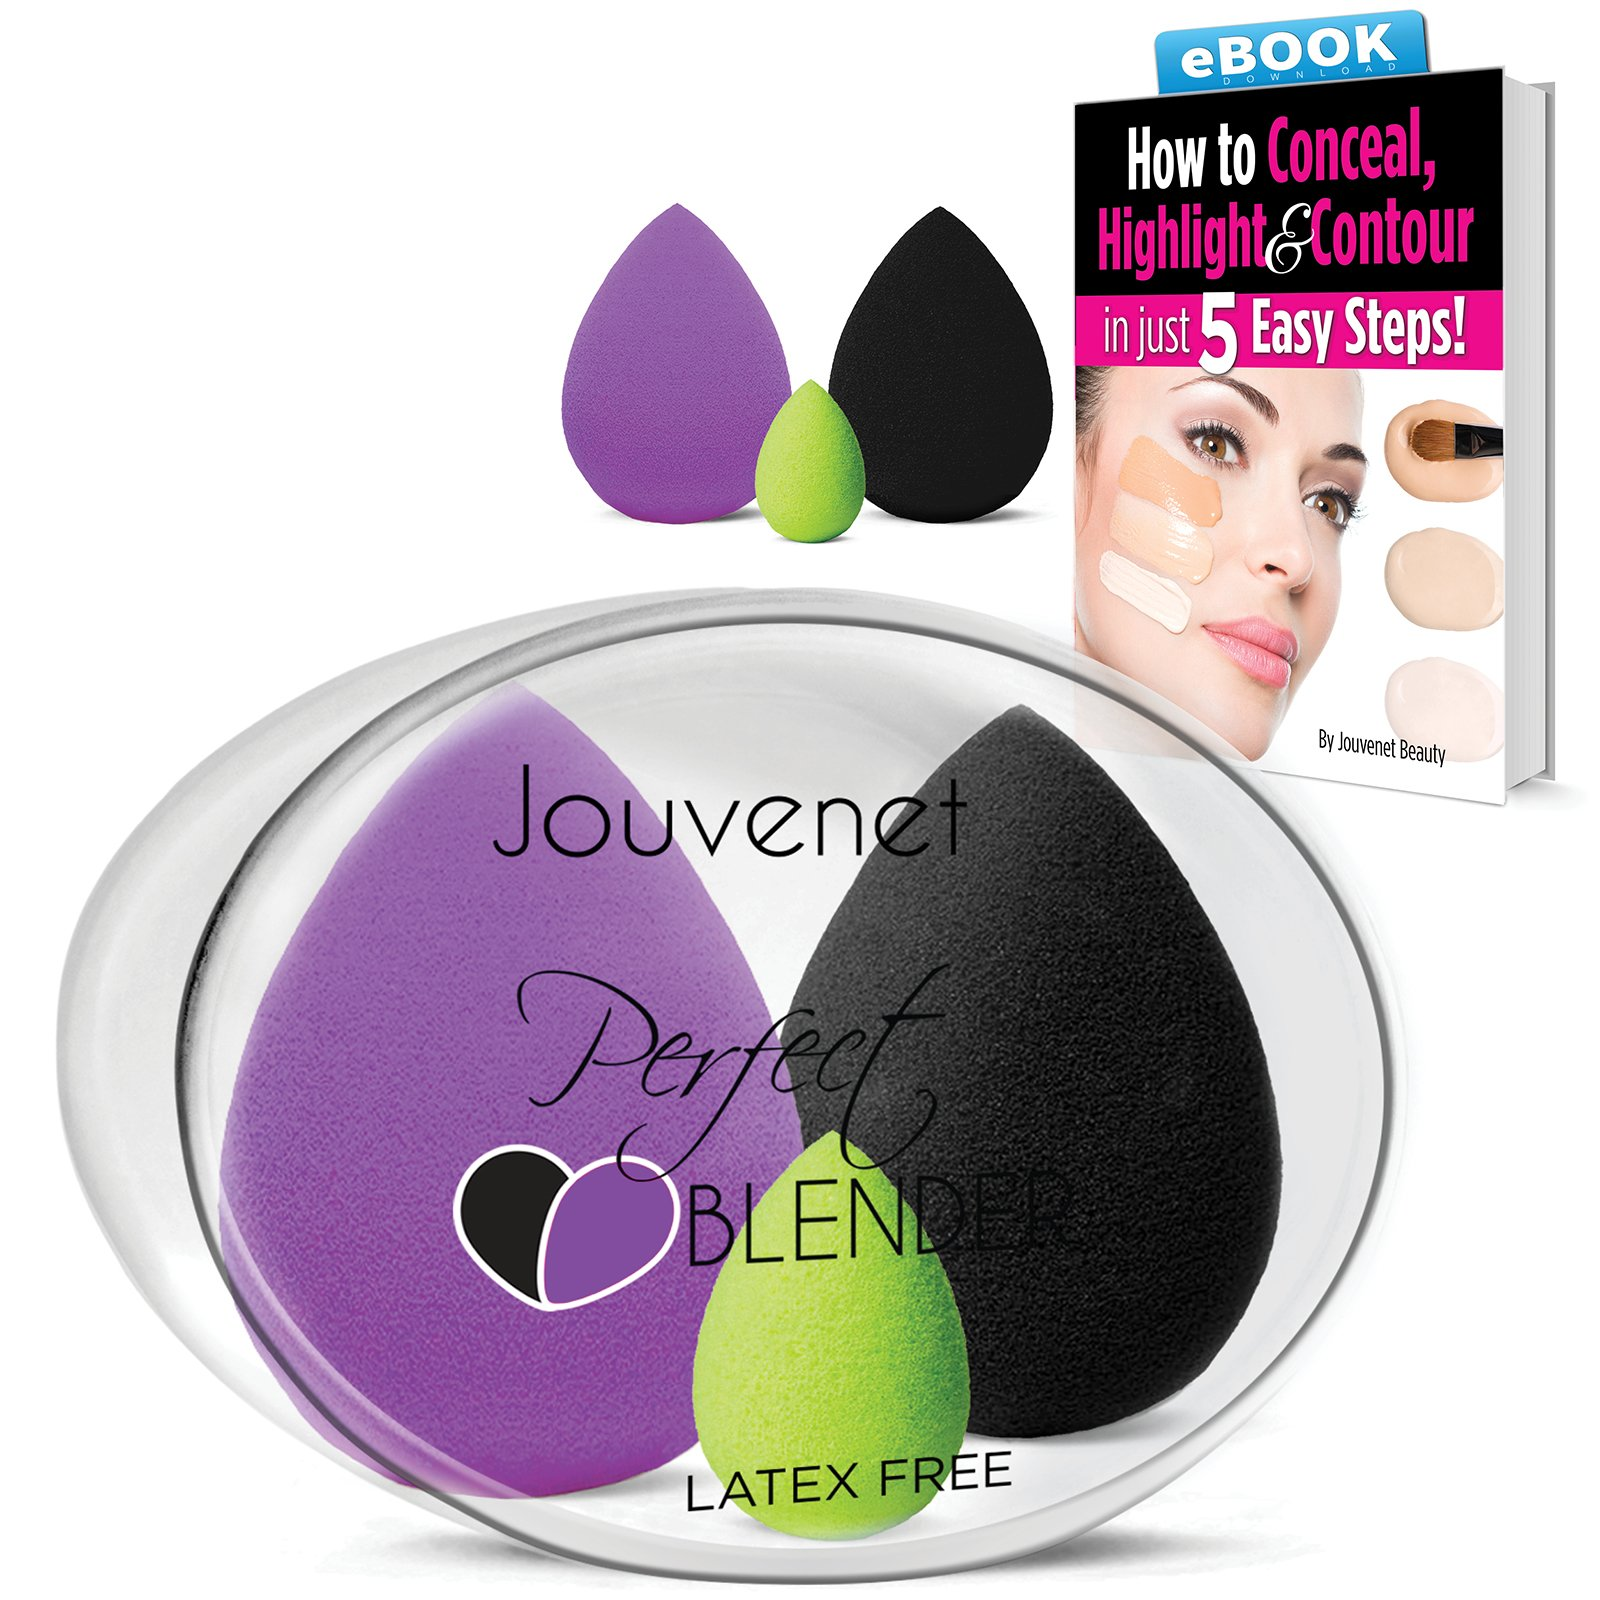 amazon com   2 pc jouvenet makeup sponges  2 latex